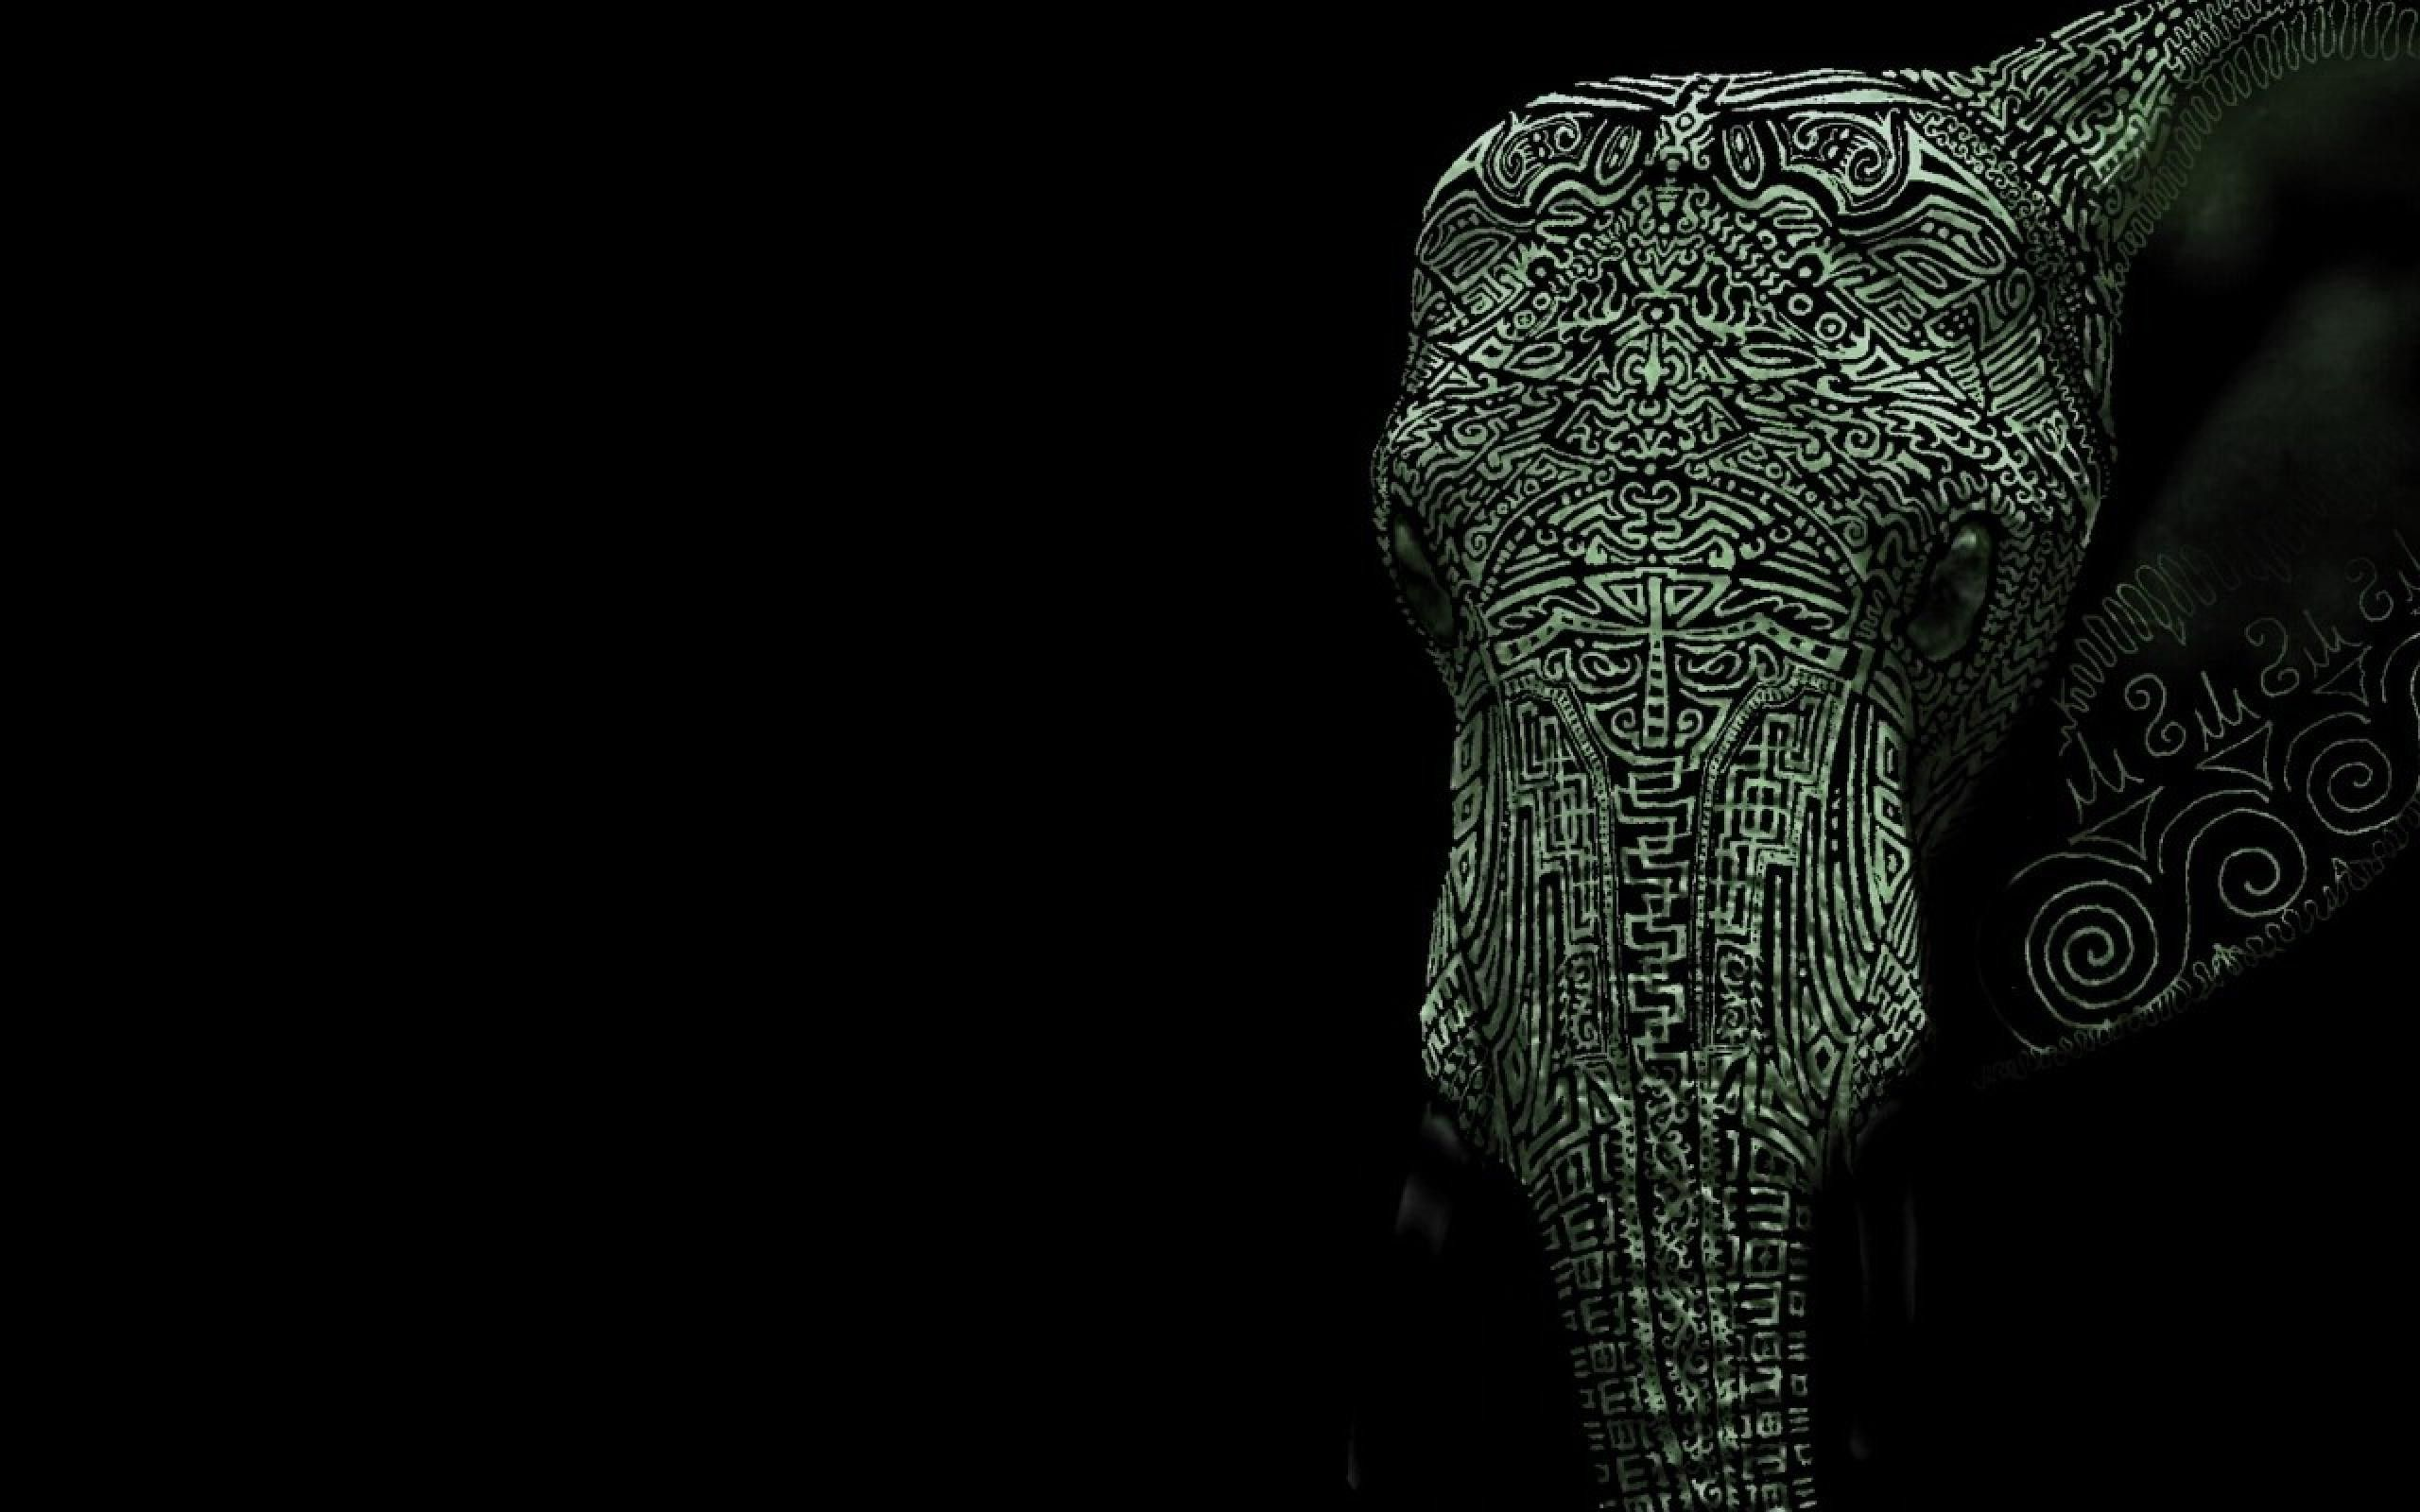 Elephant Art Wallpapers Full Hd For Desktop Wallpaper 2560